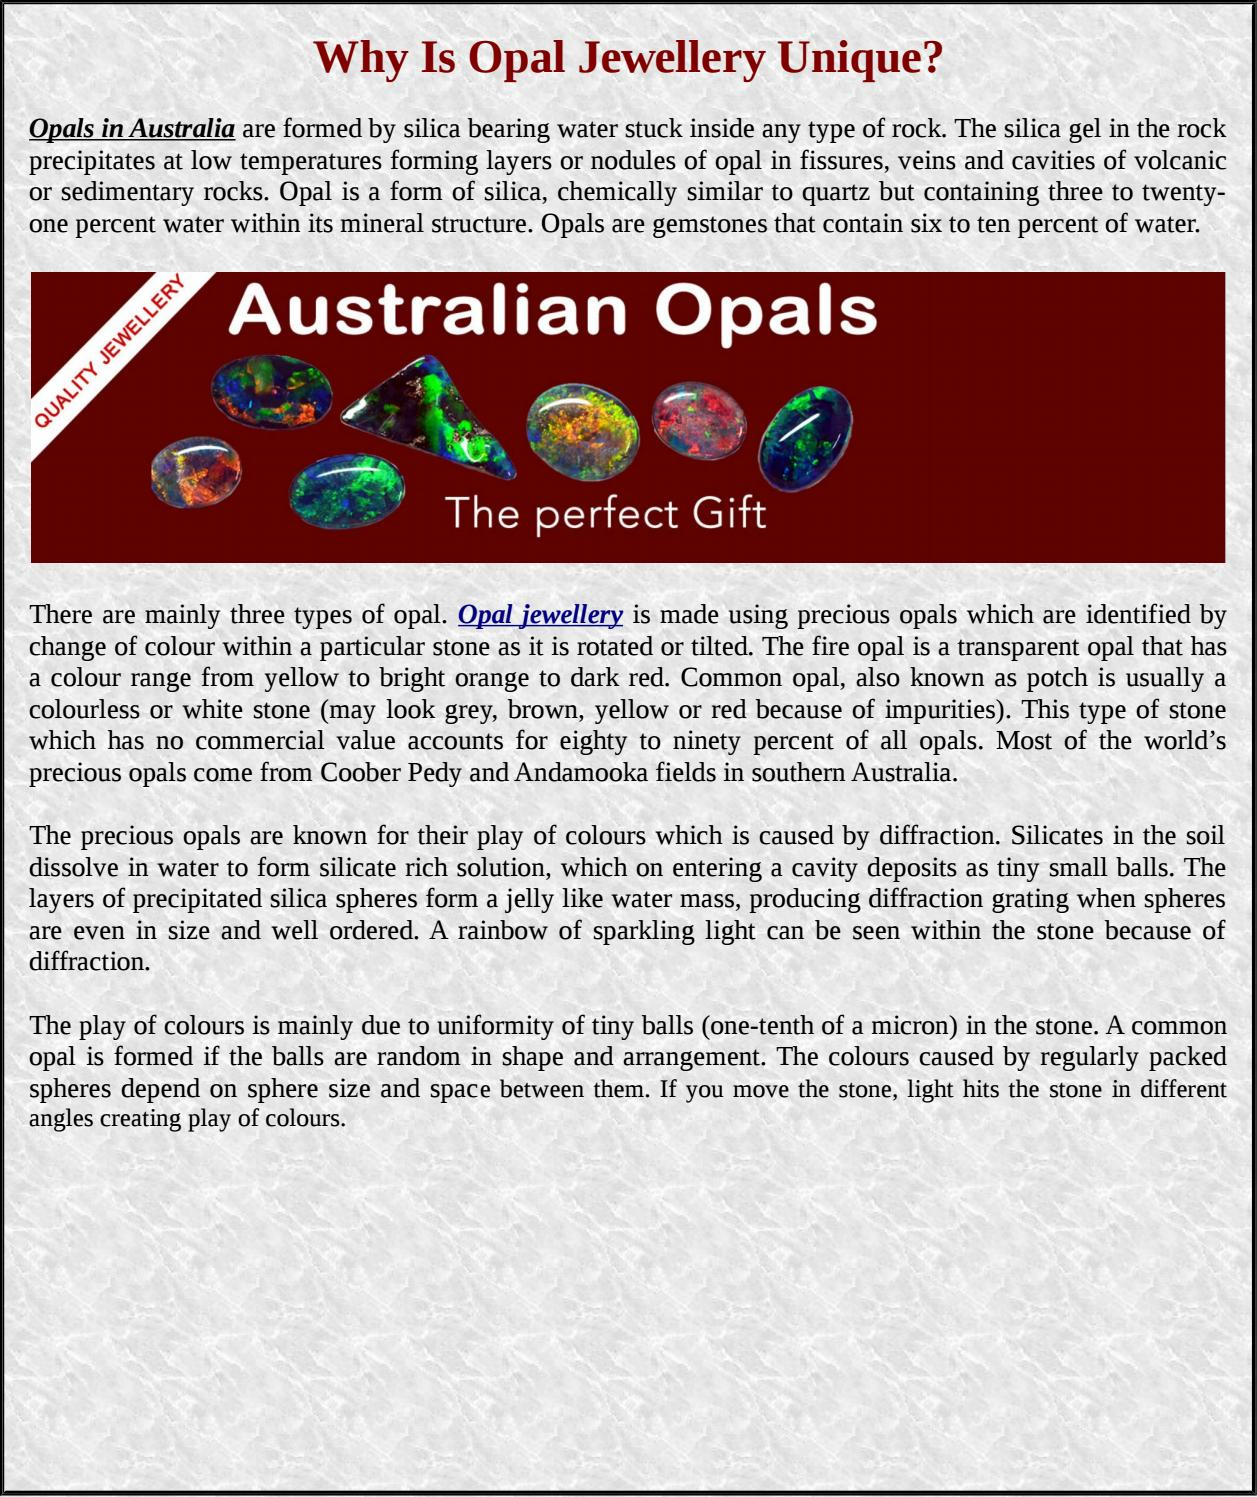 Why Is Opal Jewellery Unique? by opalshopsau - issuu